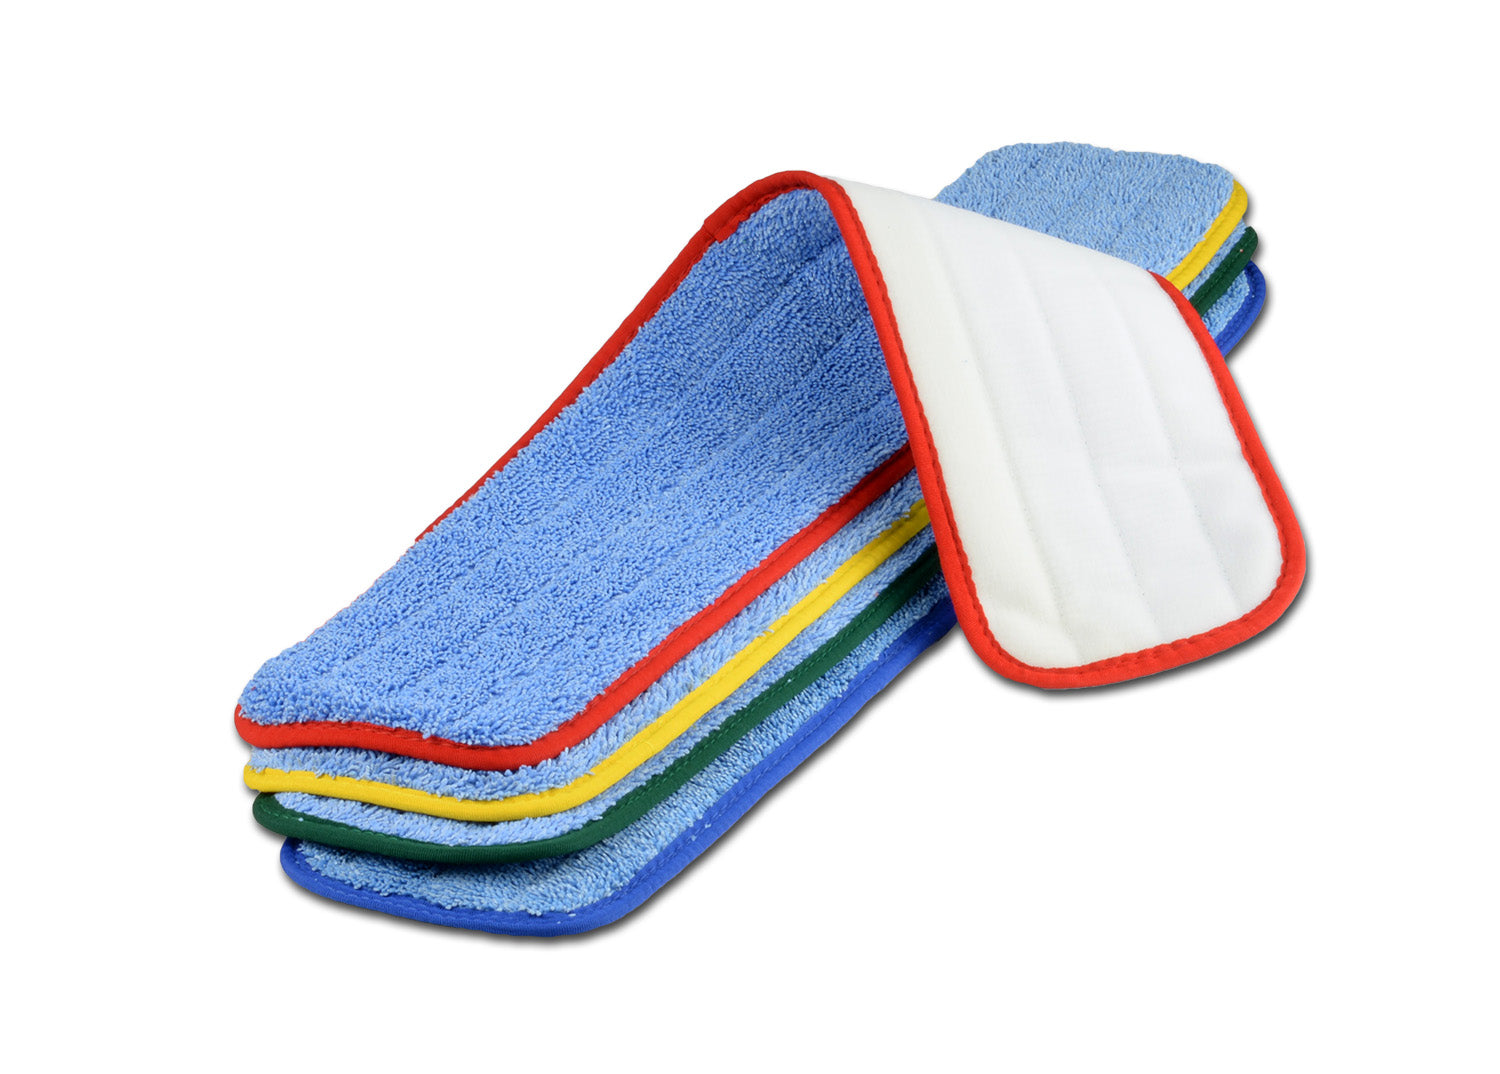 MWMCC26-Large 24 Inch Color Coded Microfiber Wet Mop Pads Prevent Cross Contamination